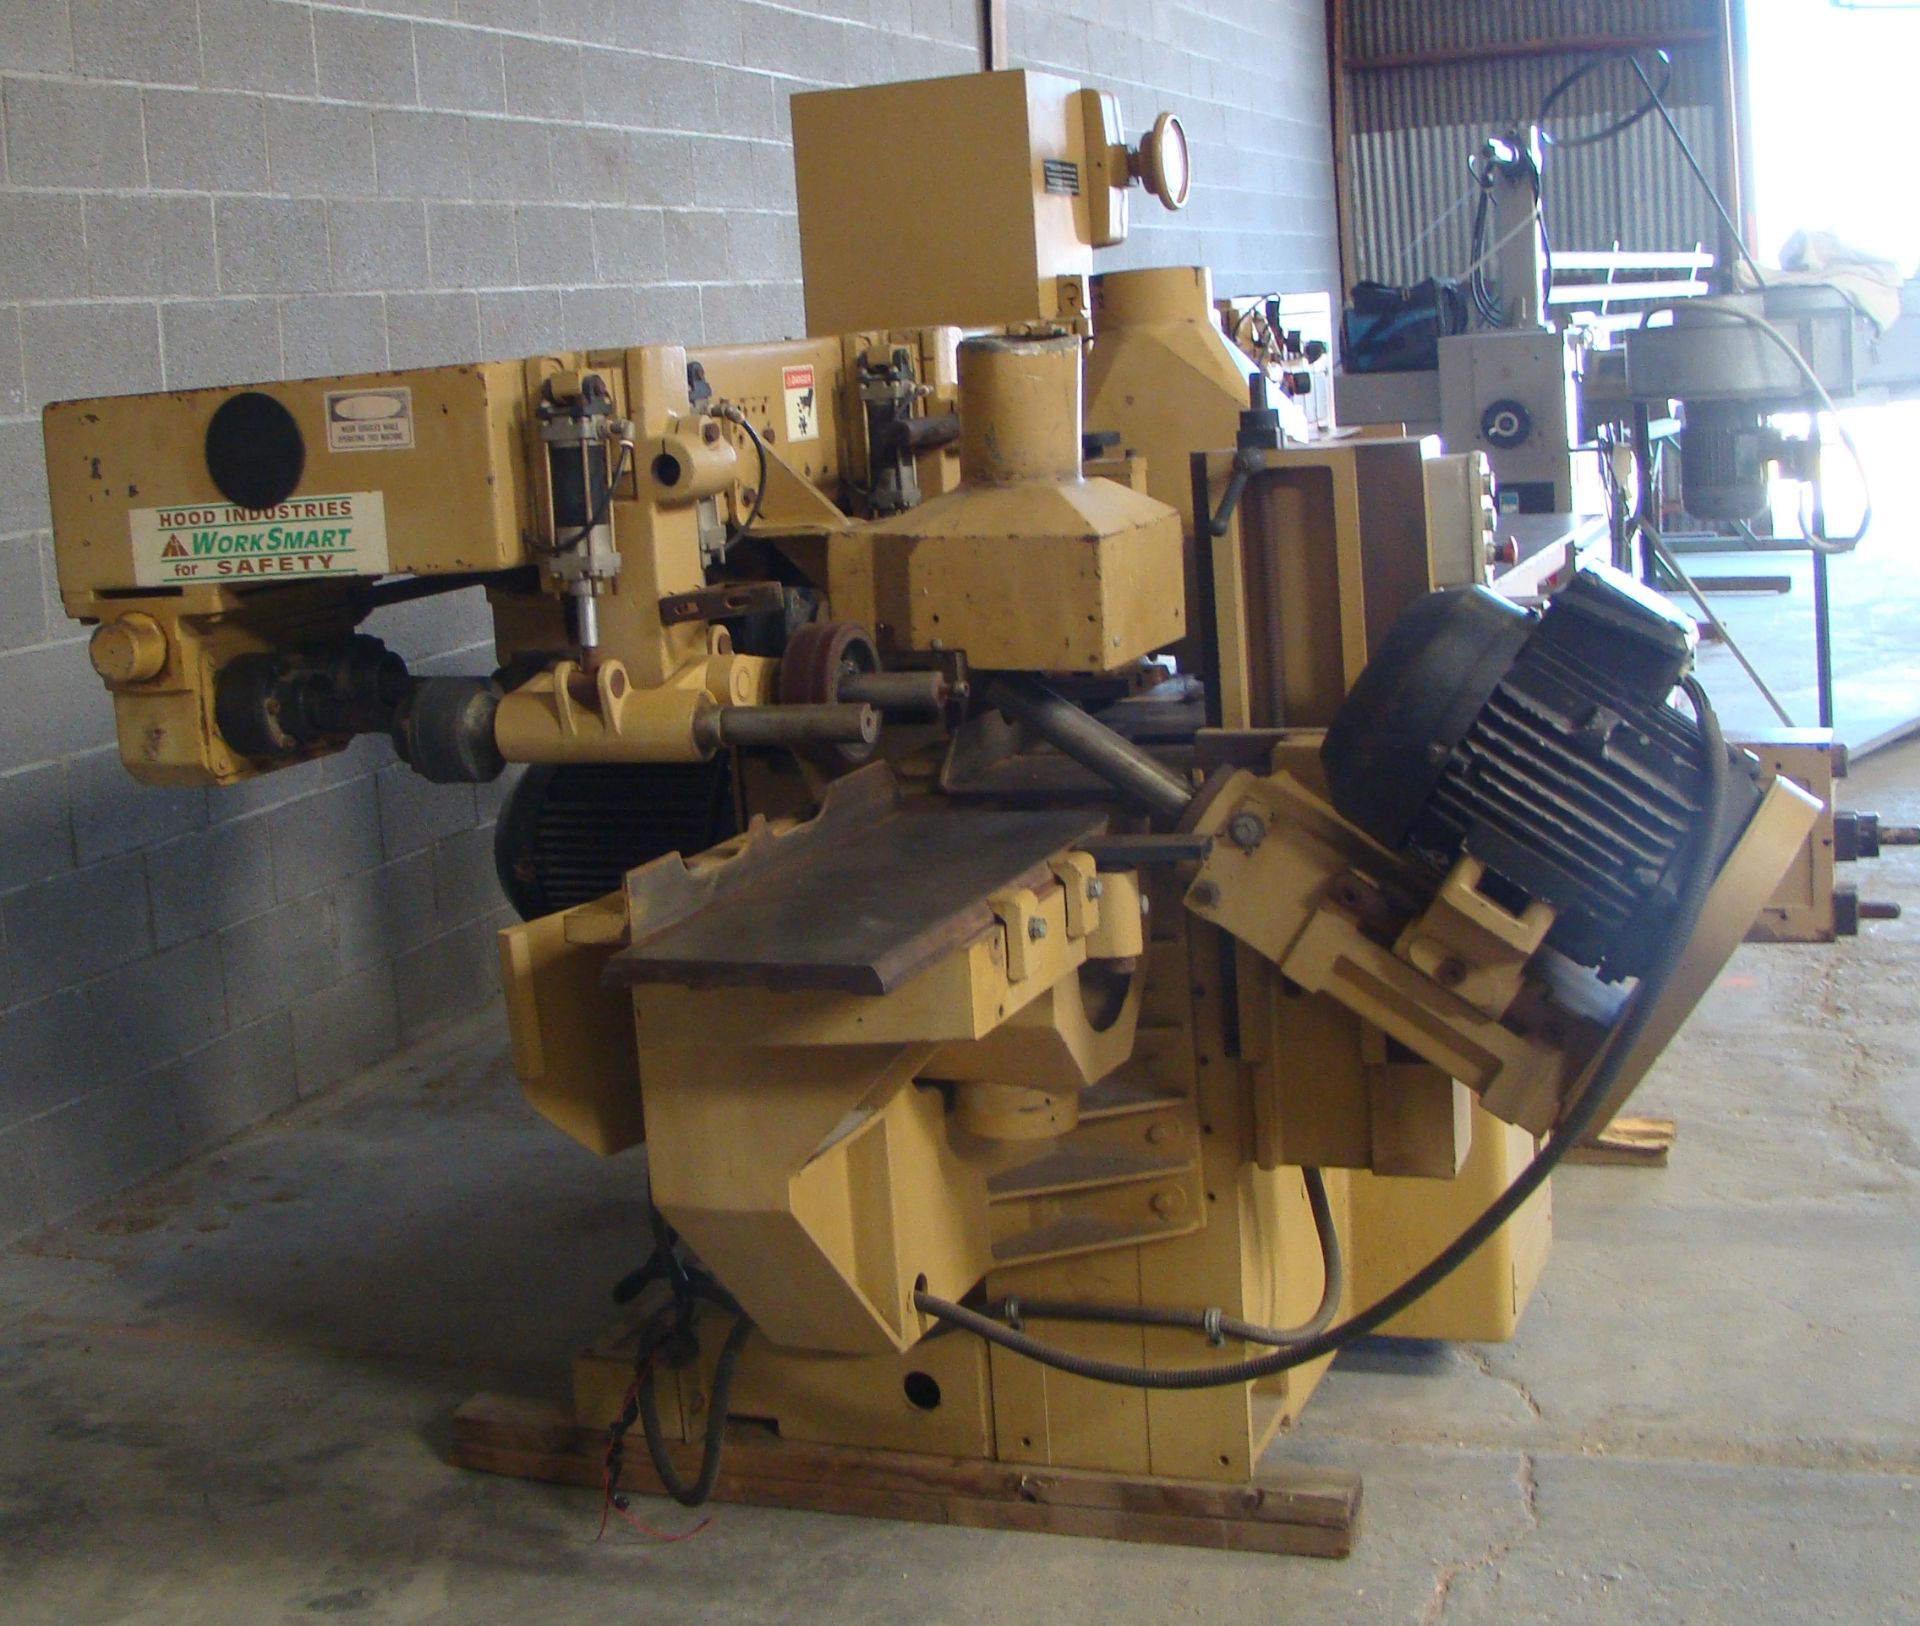 "SCMi 9"" Wood Moulder, Model: P230 5 Head 6.6HP 220/440 Volts 3Phase - Image 11 of 14"